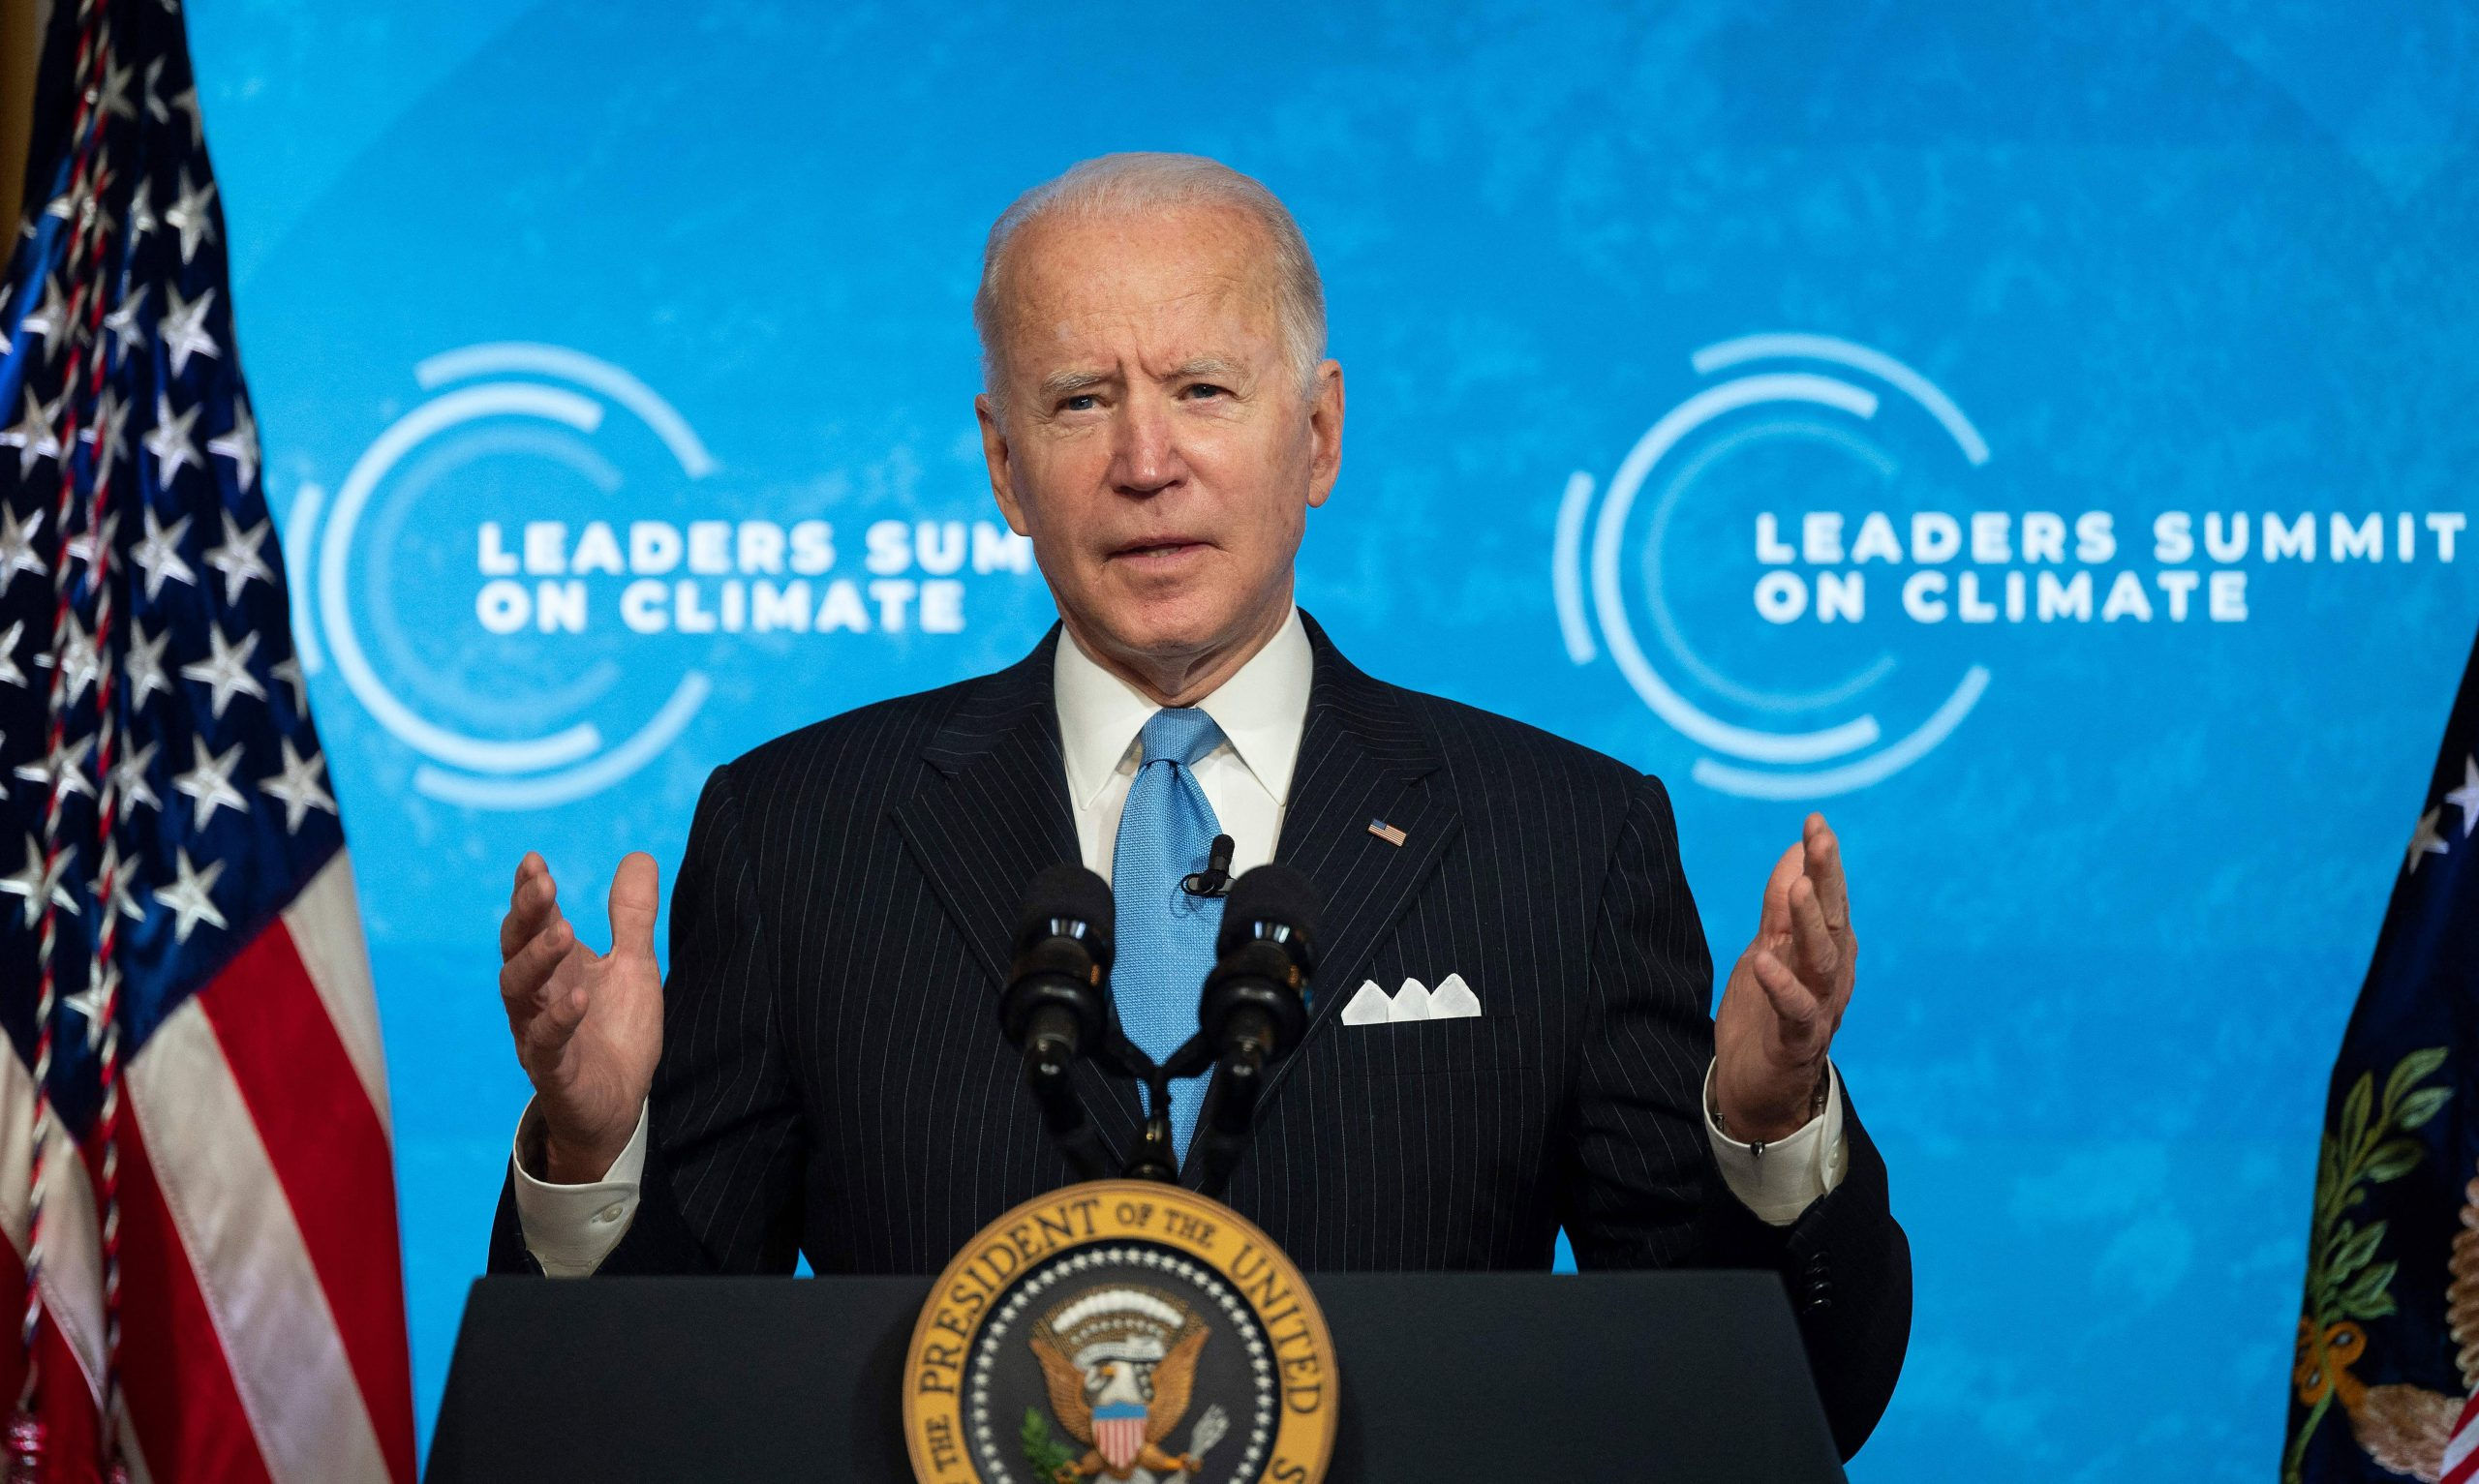 Biden business allies help White House woo private sector in climate change push